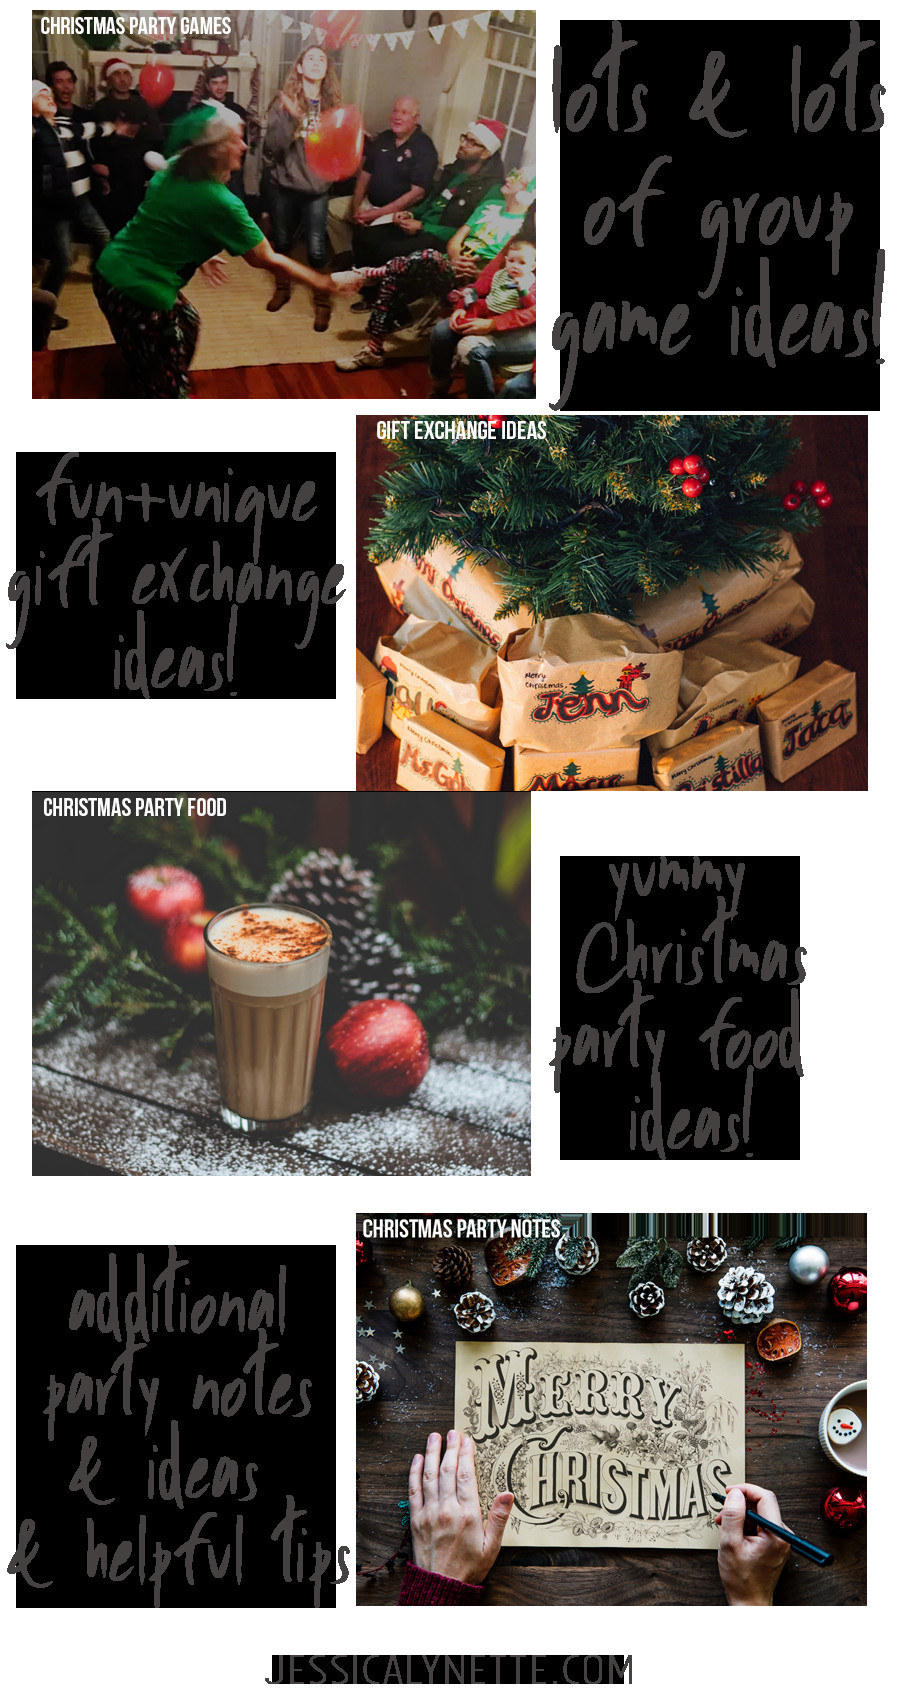 Best ideas about Gift Exchange Ideas For Large Family . Save or Pin Christmas Party Ideas and Games Now.